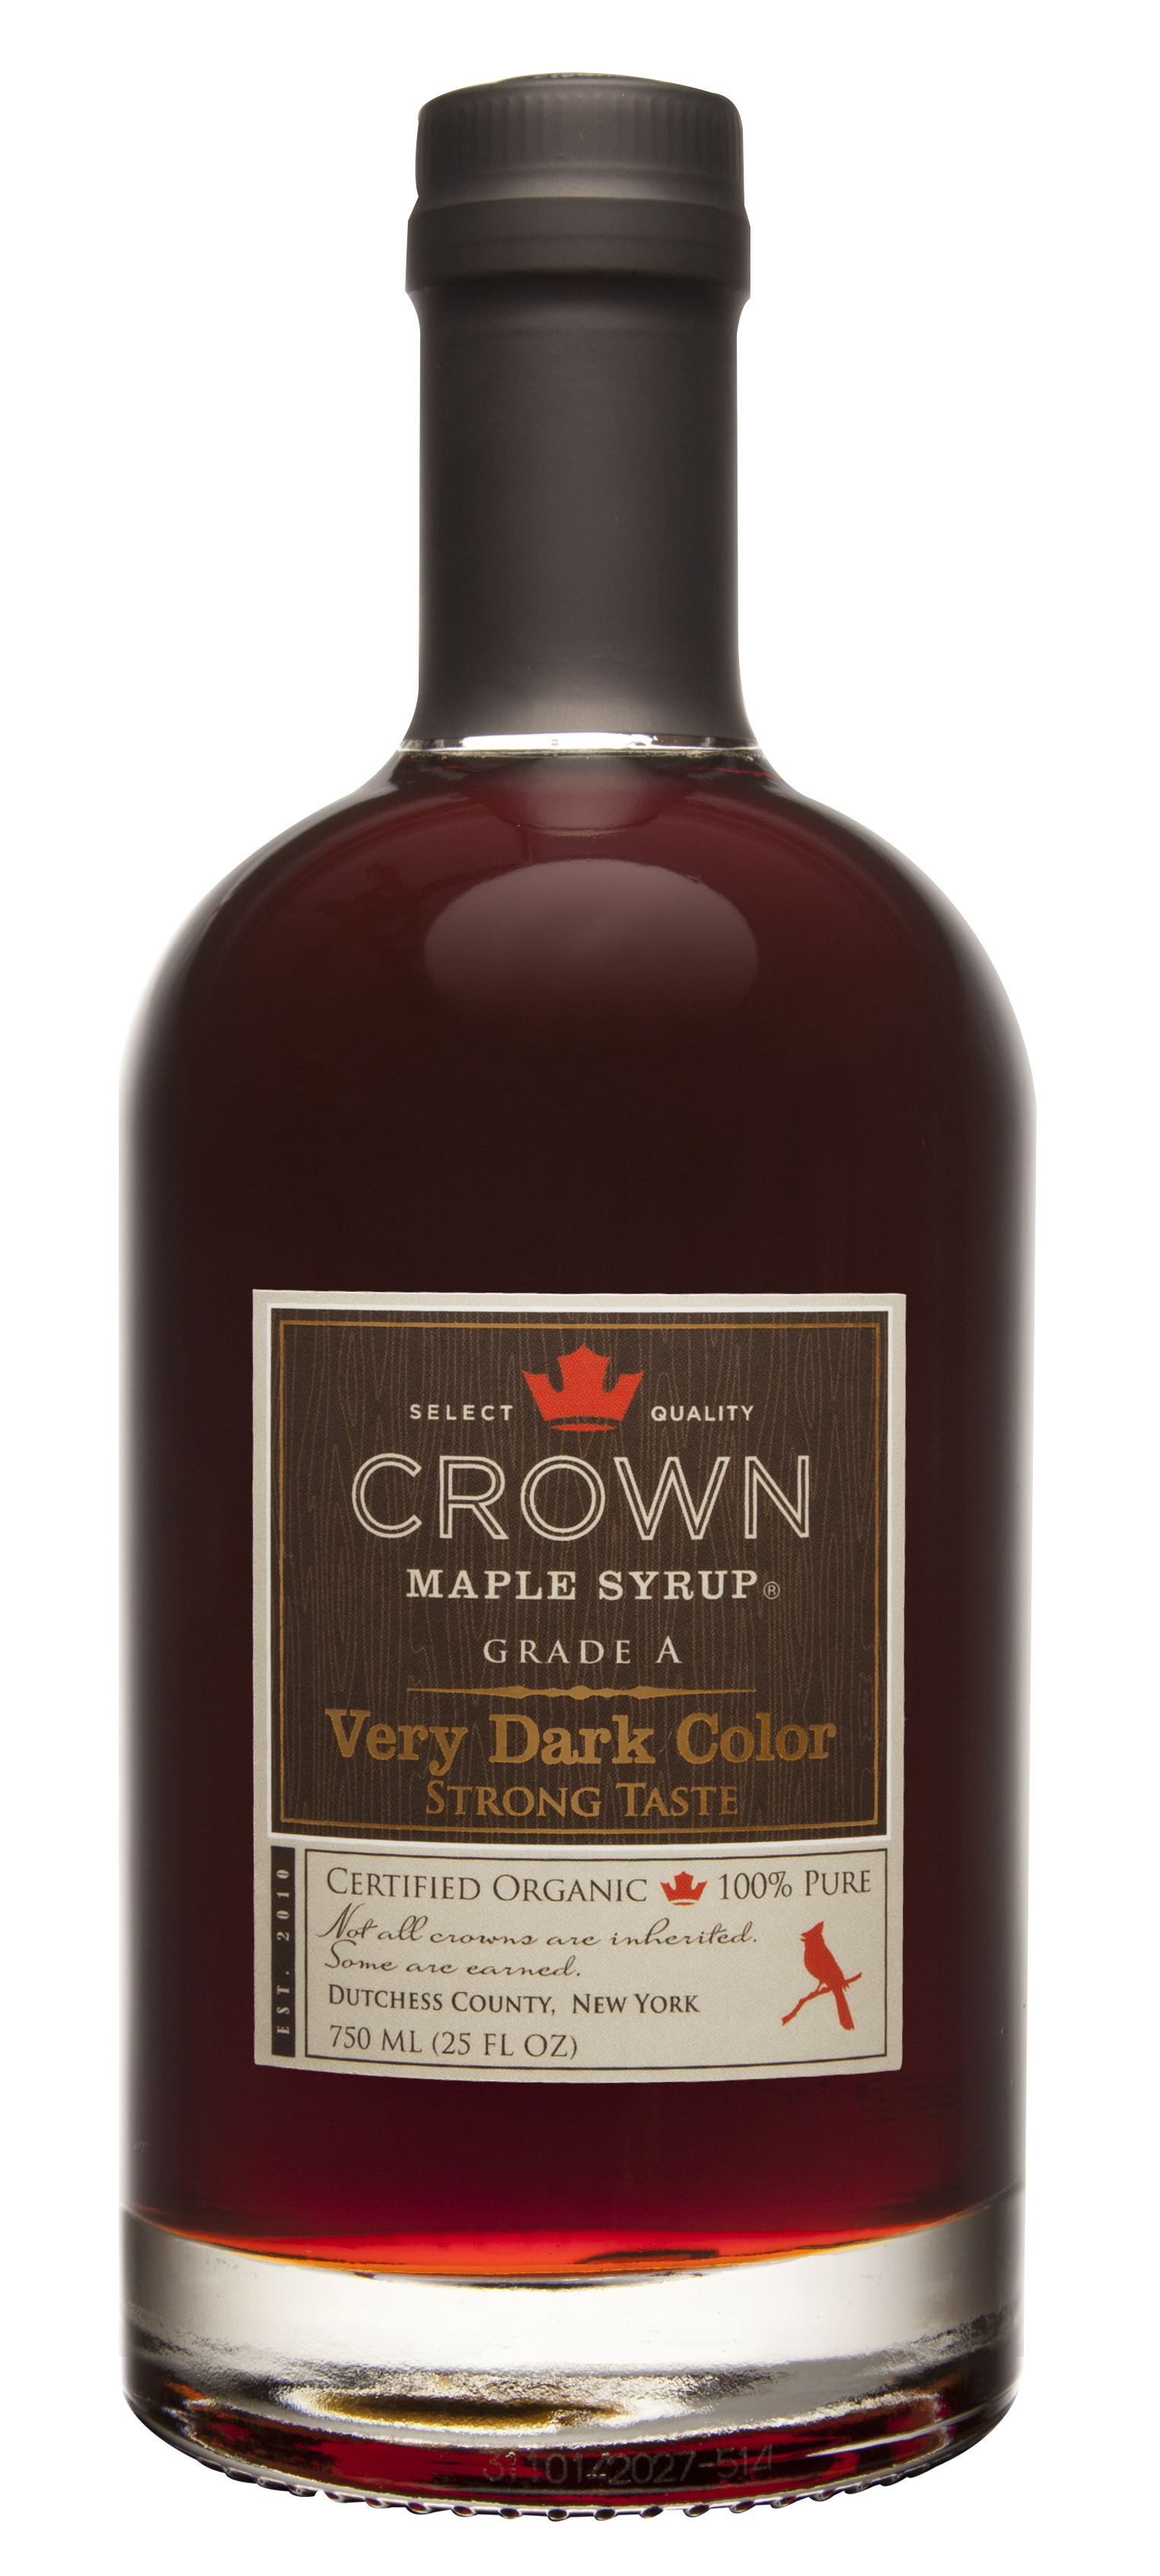 Very Dark Organic Maple Syrup 750mls - £29.99 - This Maple Syrup was smuggled from a warehouse in Birmingham and is the last maple syrup that we will sell here at The Real Maple Company. It is the first and last time Very Dark will be available in this quantity.There is definitely not enough to go around, so if you want in on this delicious, natural goodness, for Pete's sake, what are you waiting for?!?Email me (Ravi, hi!) at contact@therealmaplecompany.com to secure your pre-order of this good stuff.If you are in the Center of London, that's a free- delivery by yours truly using my pedal power. If not, snail mail or carrier pigeon - your choice!Thank you for believing in the little Maple Company that could - you have literally drank every single other bottle I have. My life is so much better because of this great adventure, and because of you being a part of this chapter.£29.99 plus shipping.